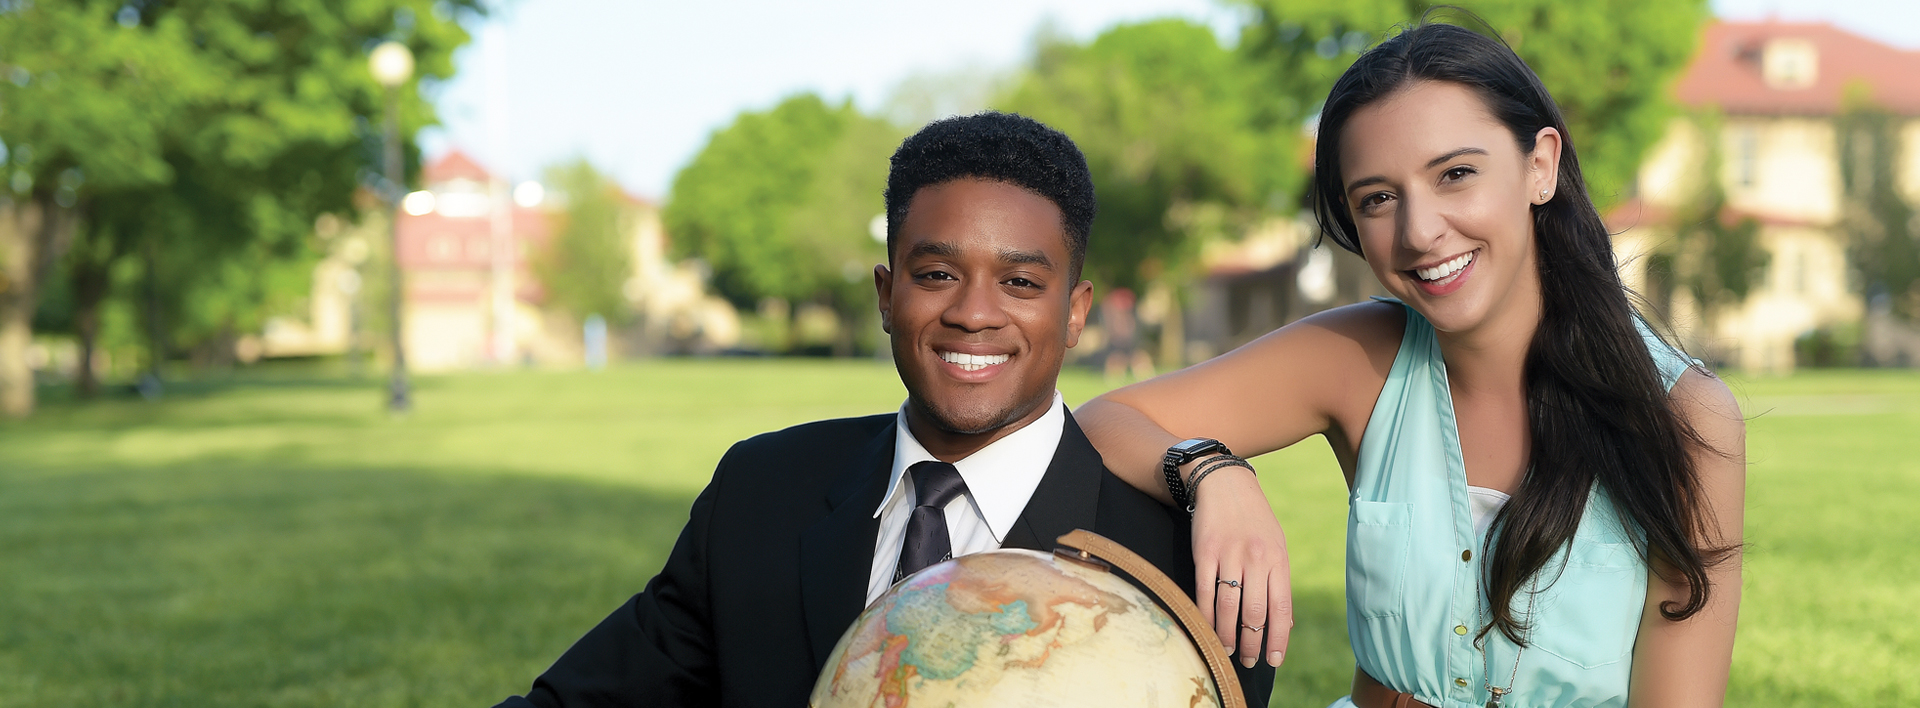 Carlsky Belizaire and Karissa Caputo, both Macaulay Honors College students at Queens College are Fulbright winners